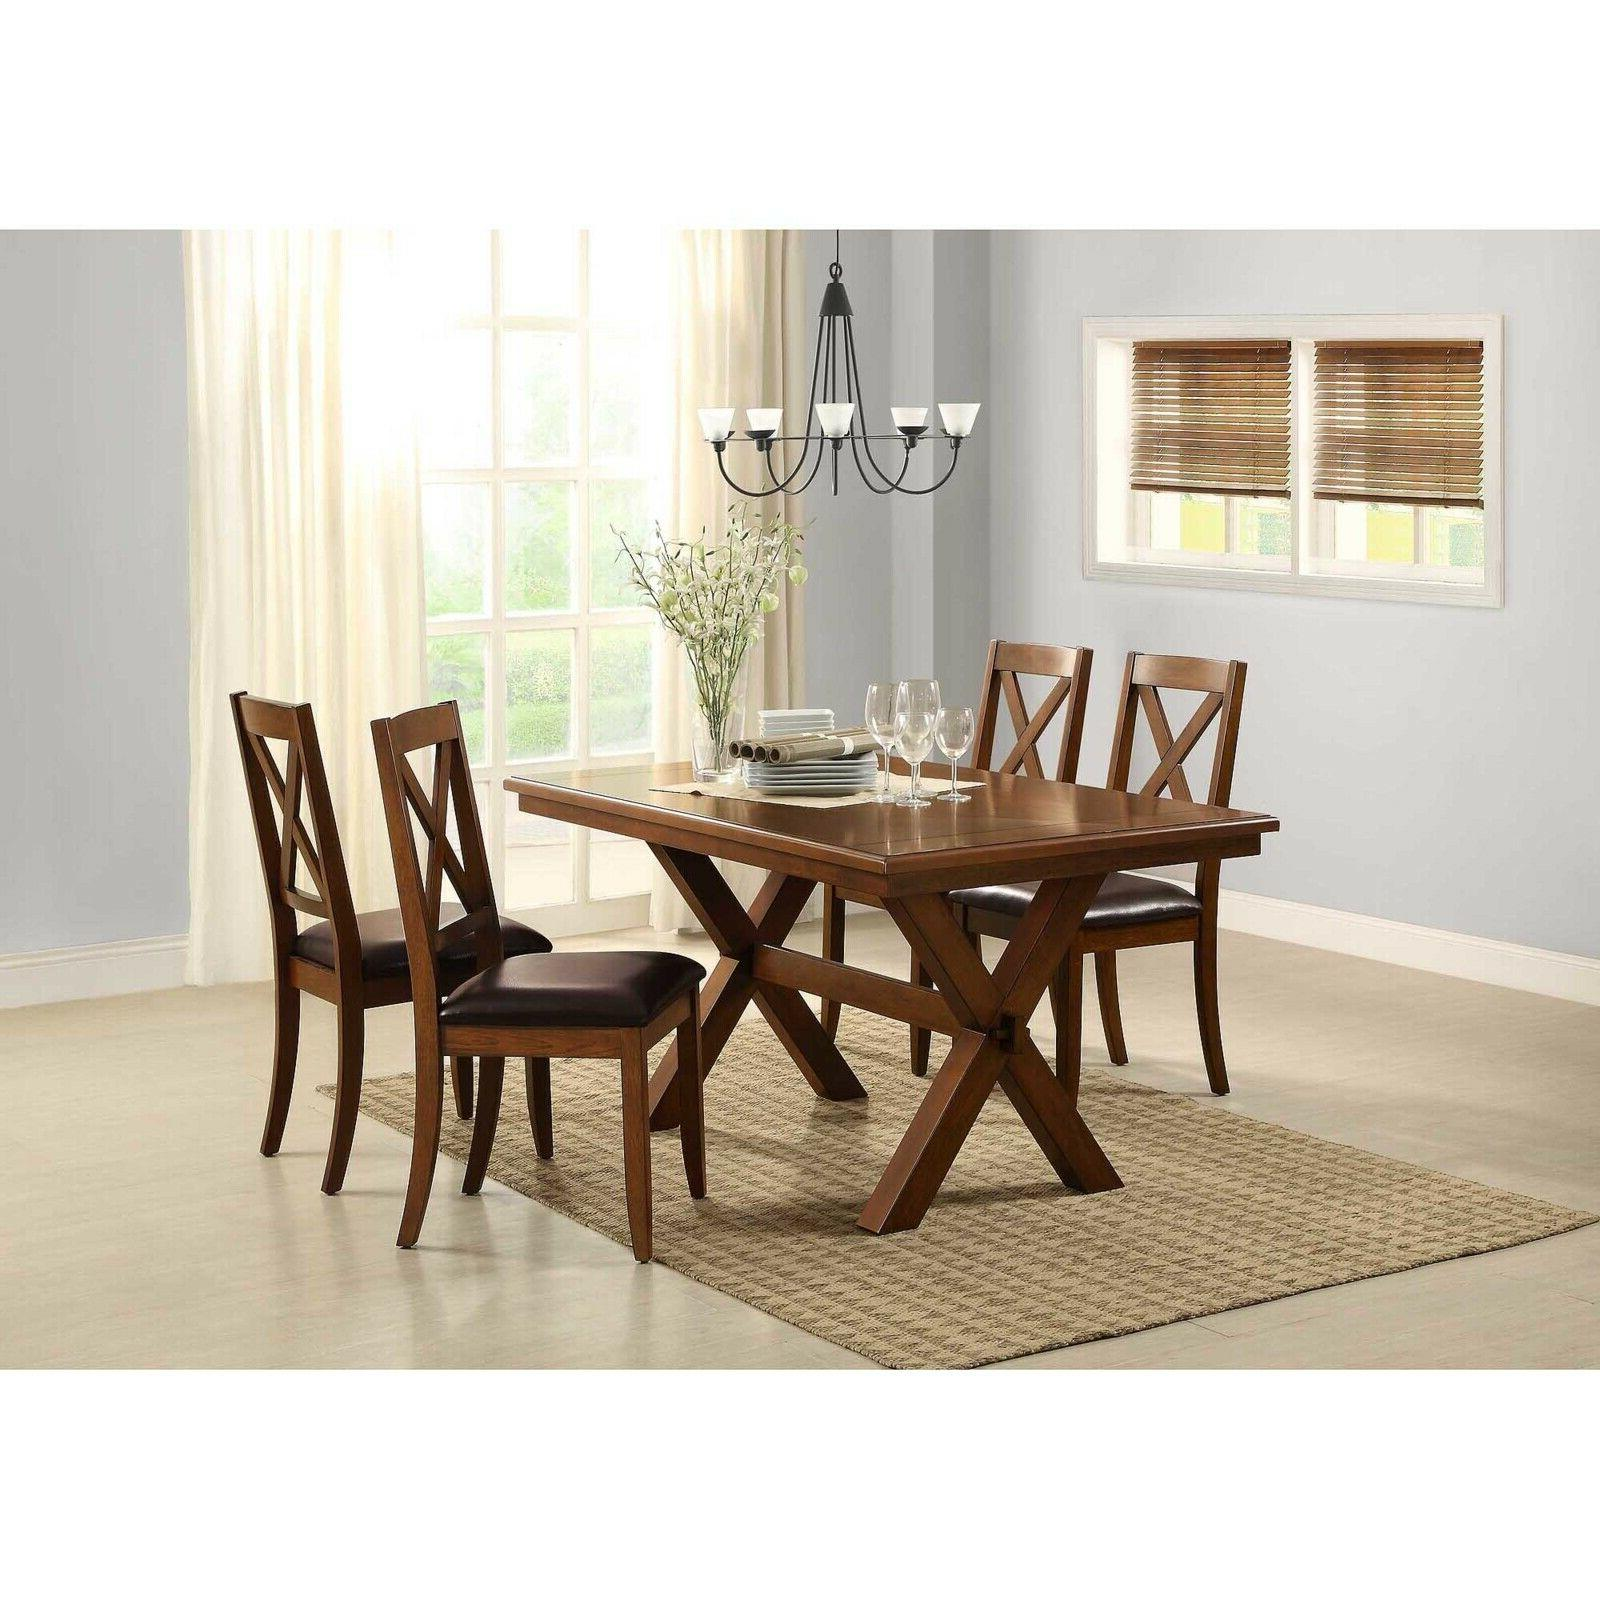 Dining Table Homes Gardens Maddox Crossing Rectangle Shape